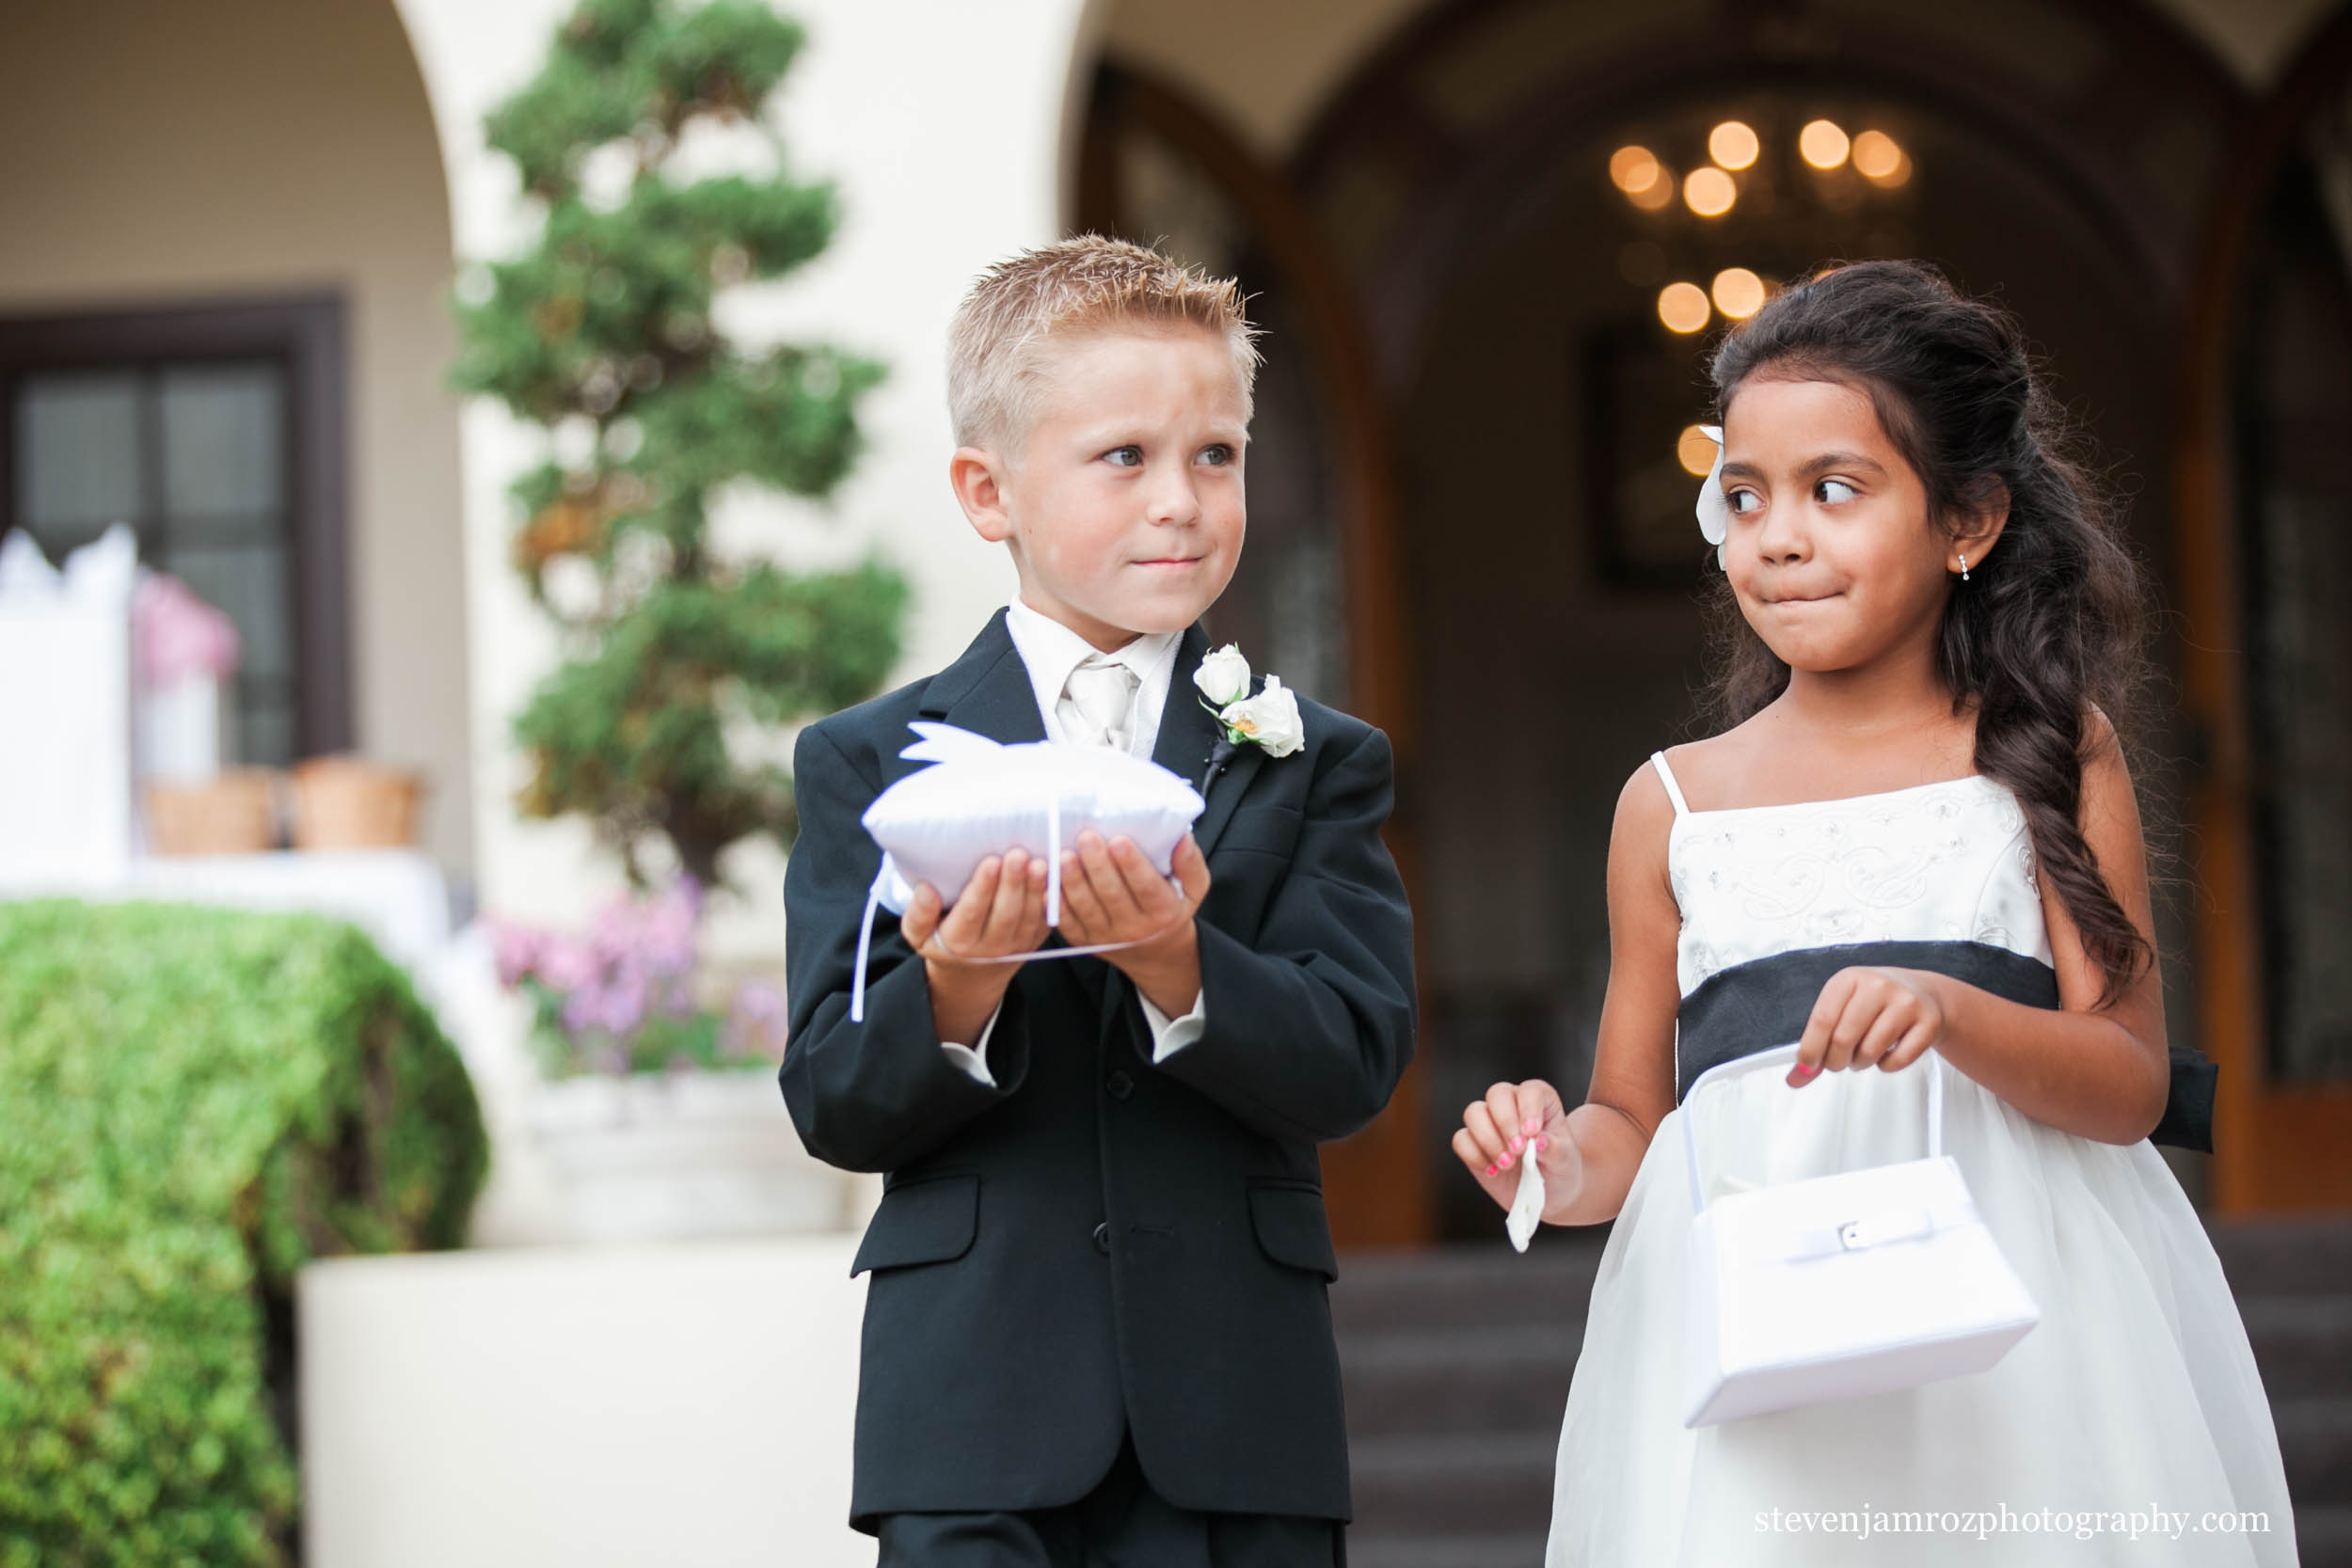 flower-girl-wedding-raleigh-steven-jamroz-photography-0598.jpg